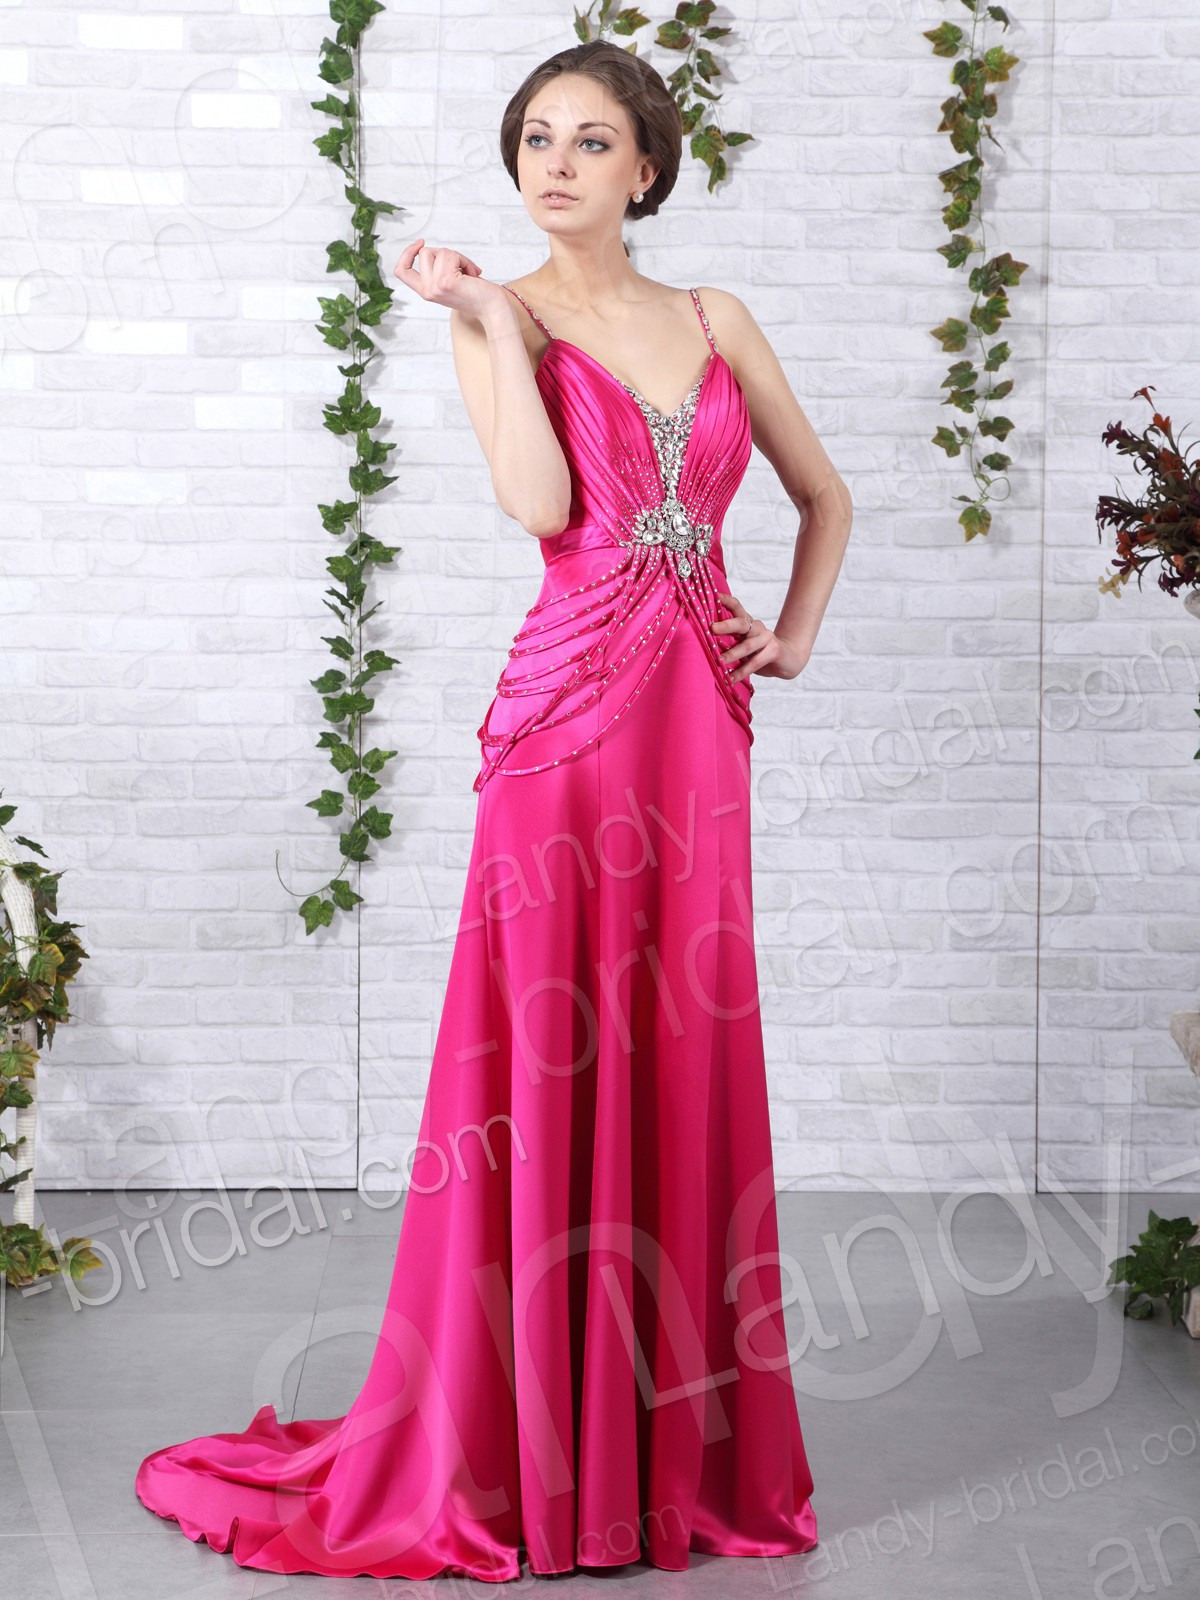 Formal Elegant Abendkleid Cunda Galerie20 Luxurius Abendkleid Cunda Design